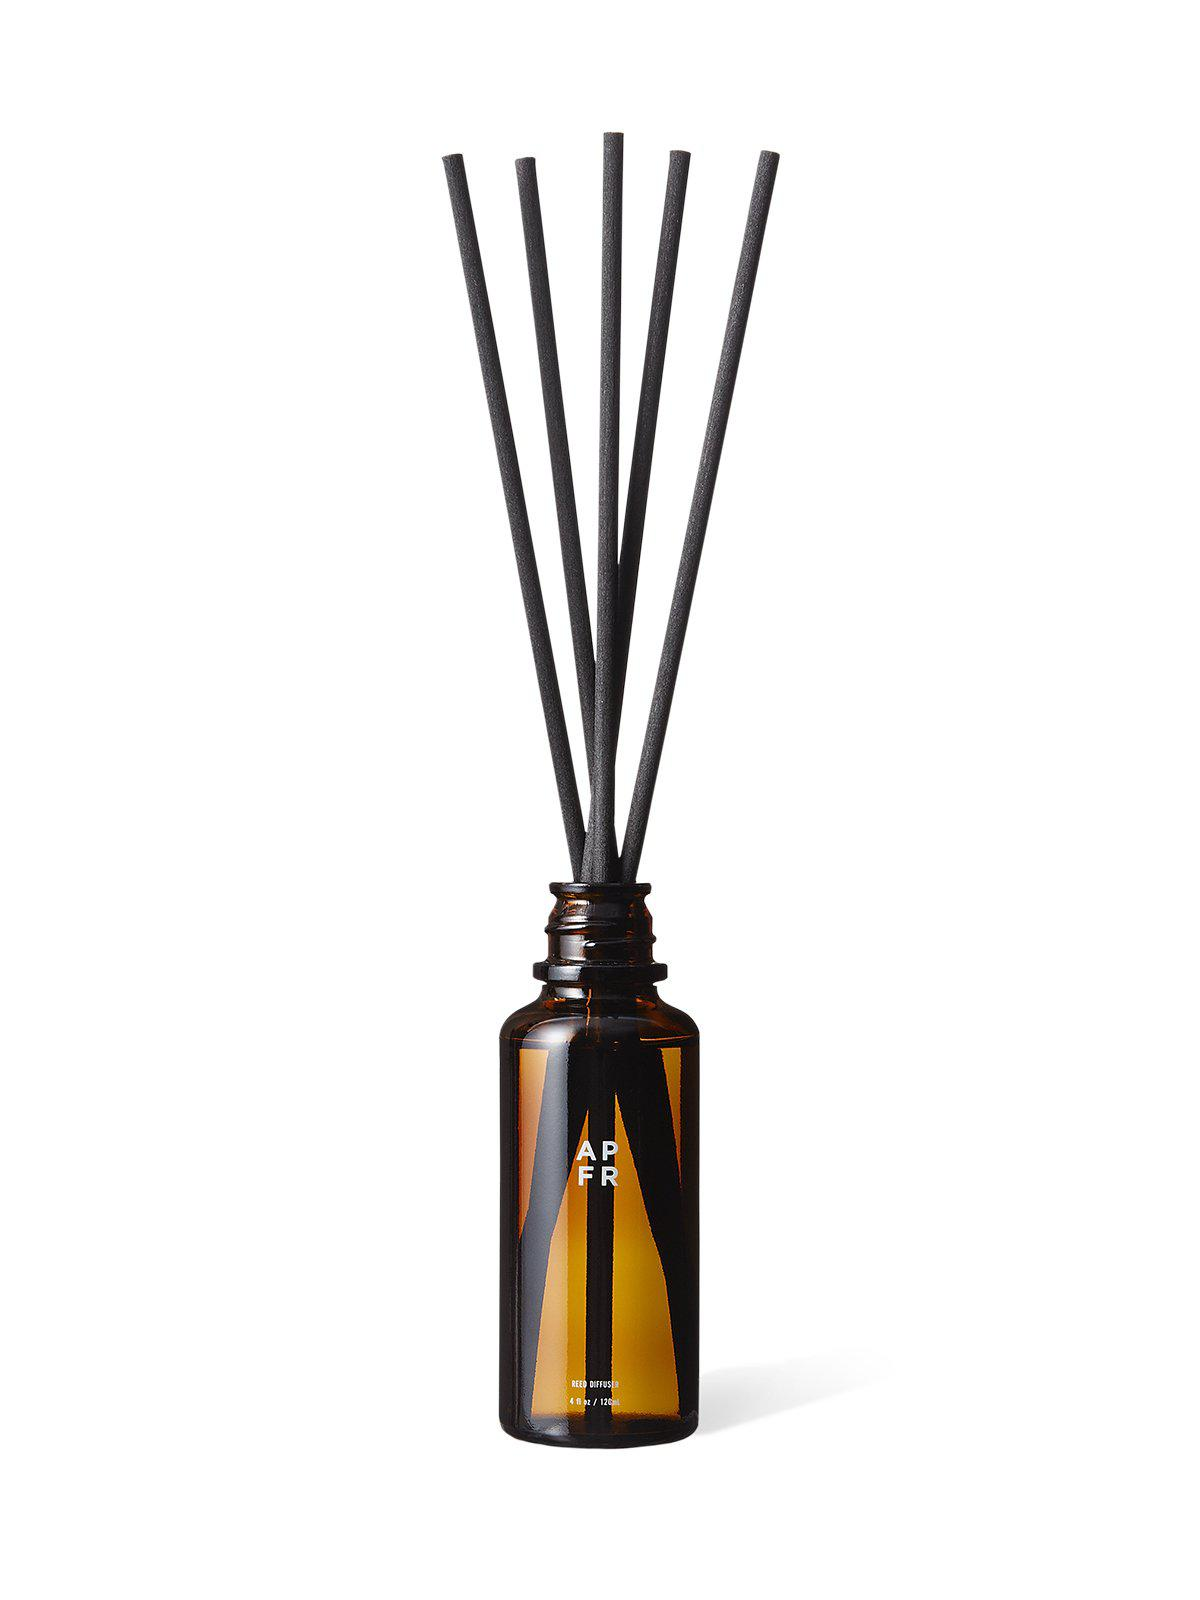 Apotheke Fragrance APFR Fragrance Reed Diffuser 120ml Facing East